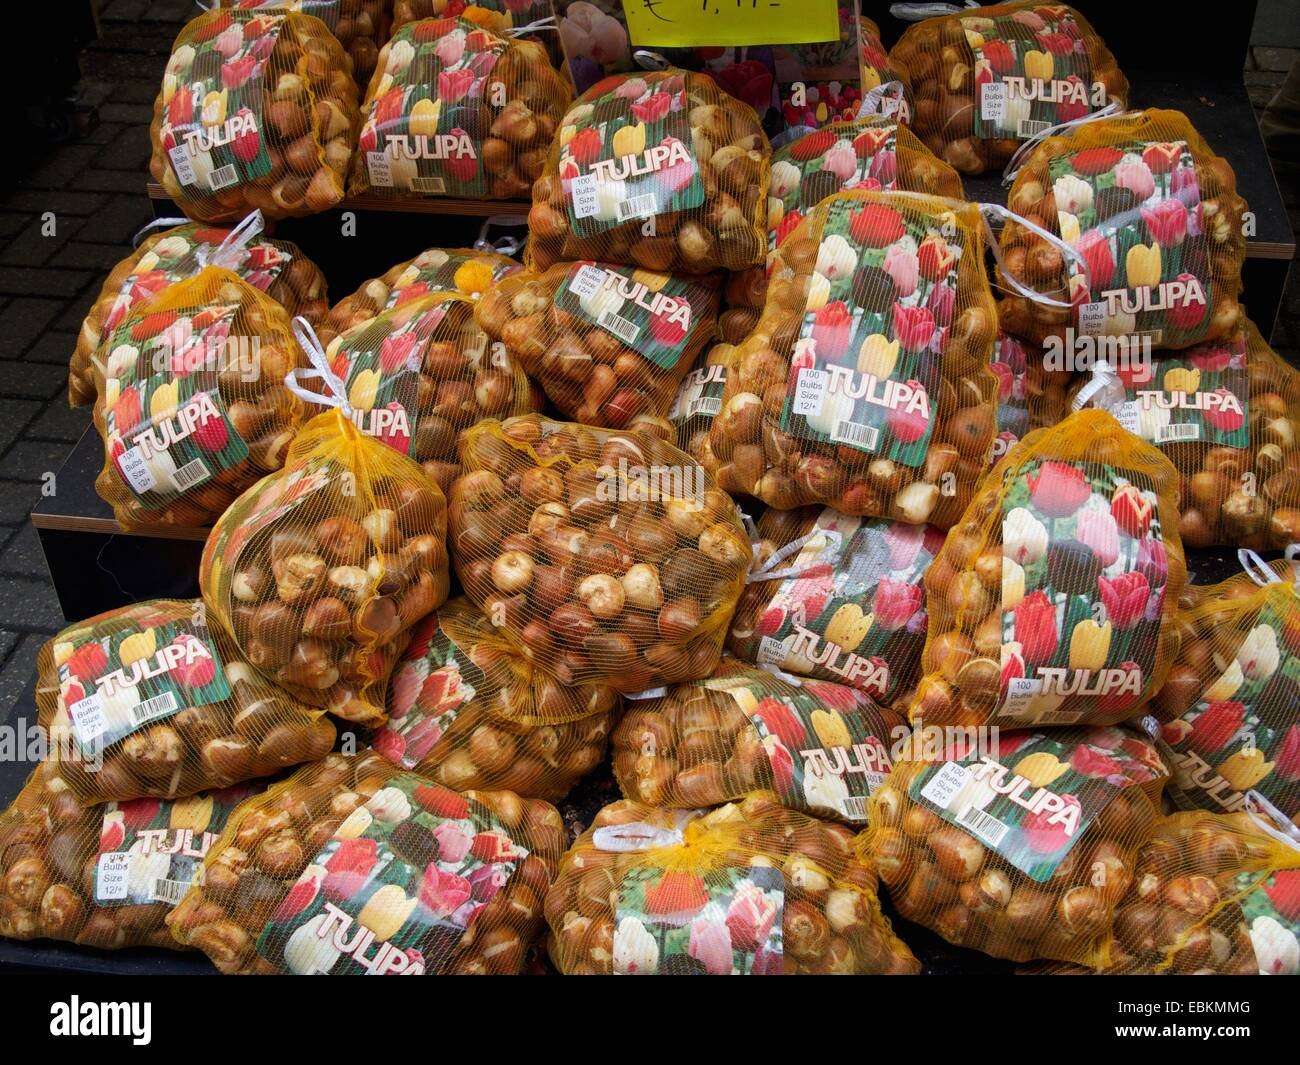 Bulbs in sacks, Bloemenmarkt, Amsterdam, Province of North Holland, Holland, The Netherlands, Europe - Stock Image